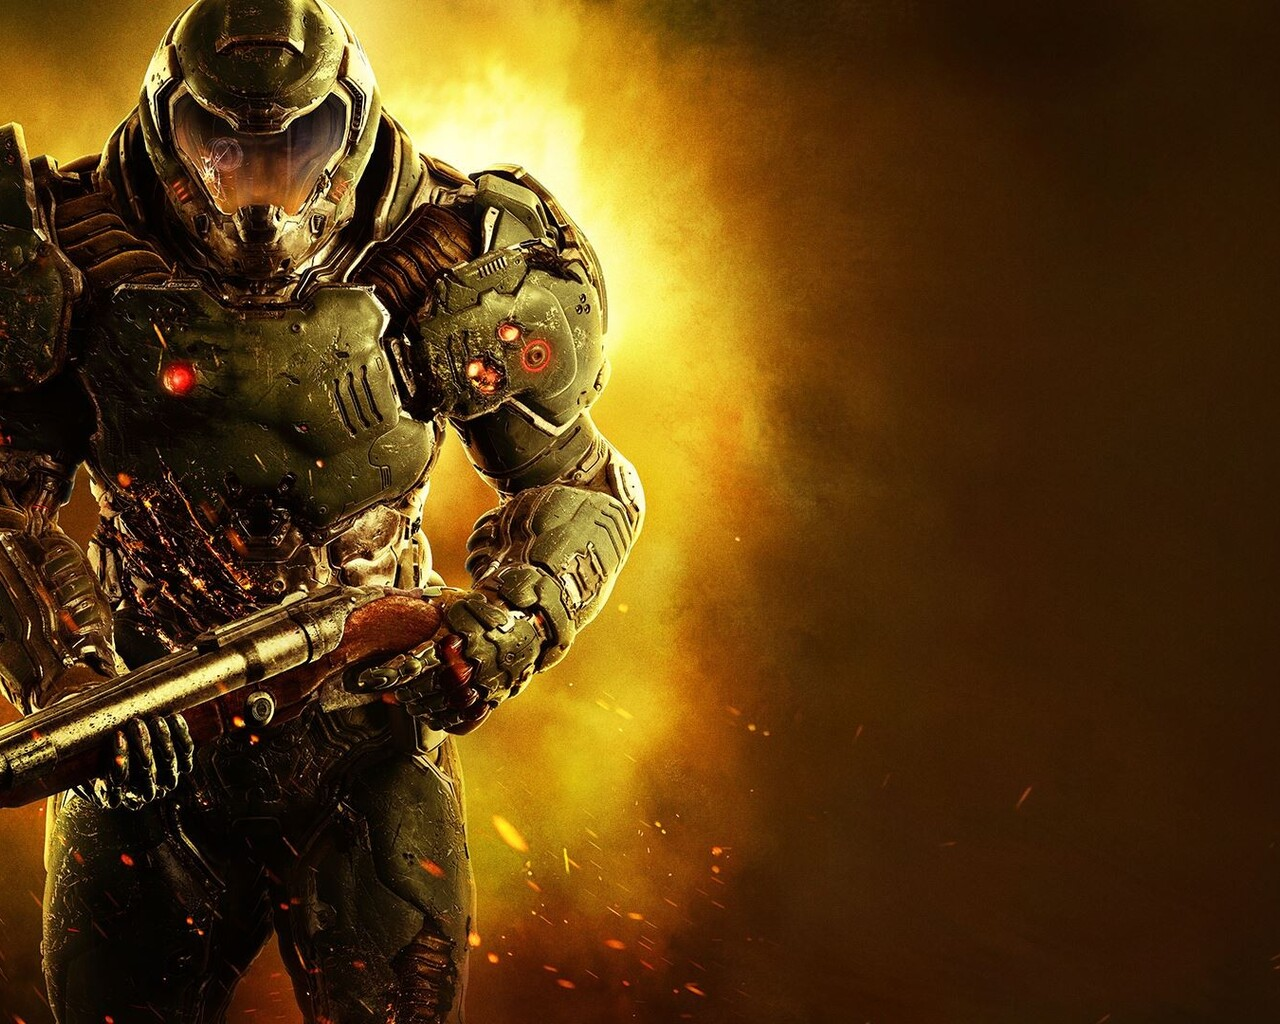 1280x1024 Doom Game HD Resolution 4k Wallpapers Images